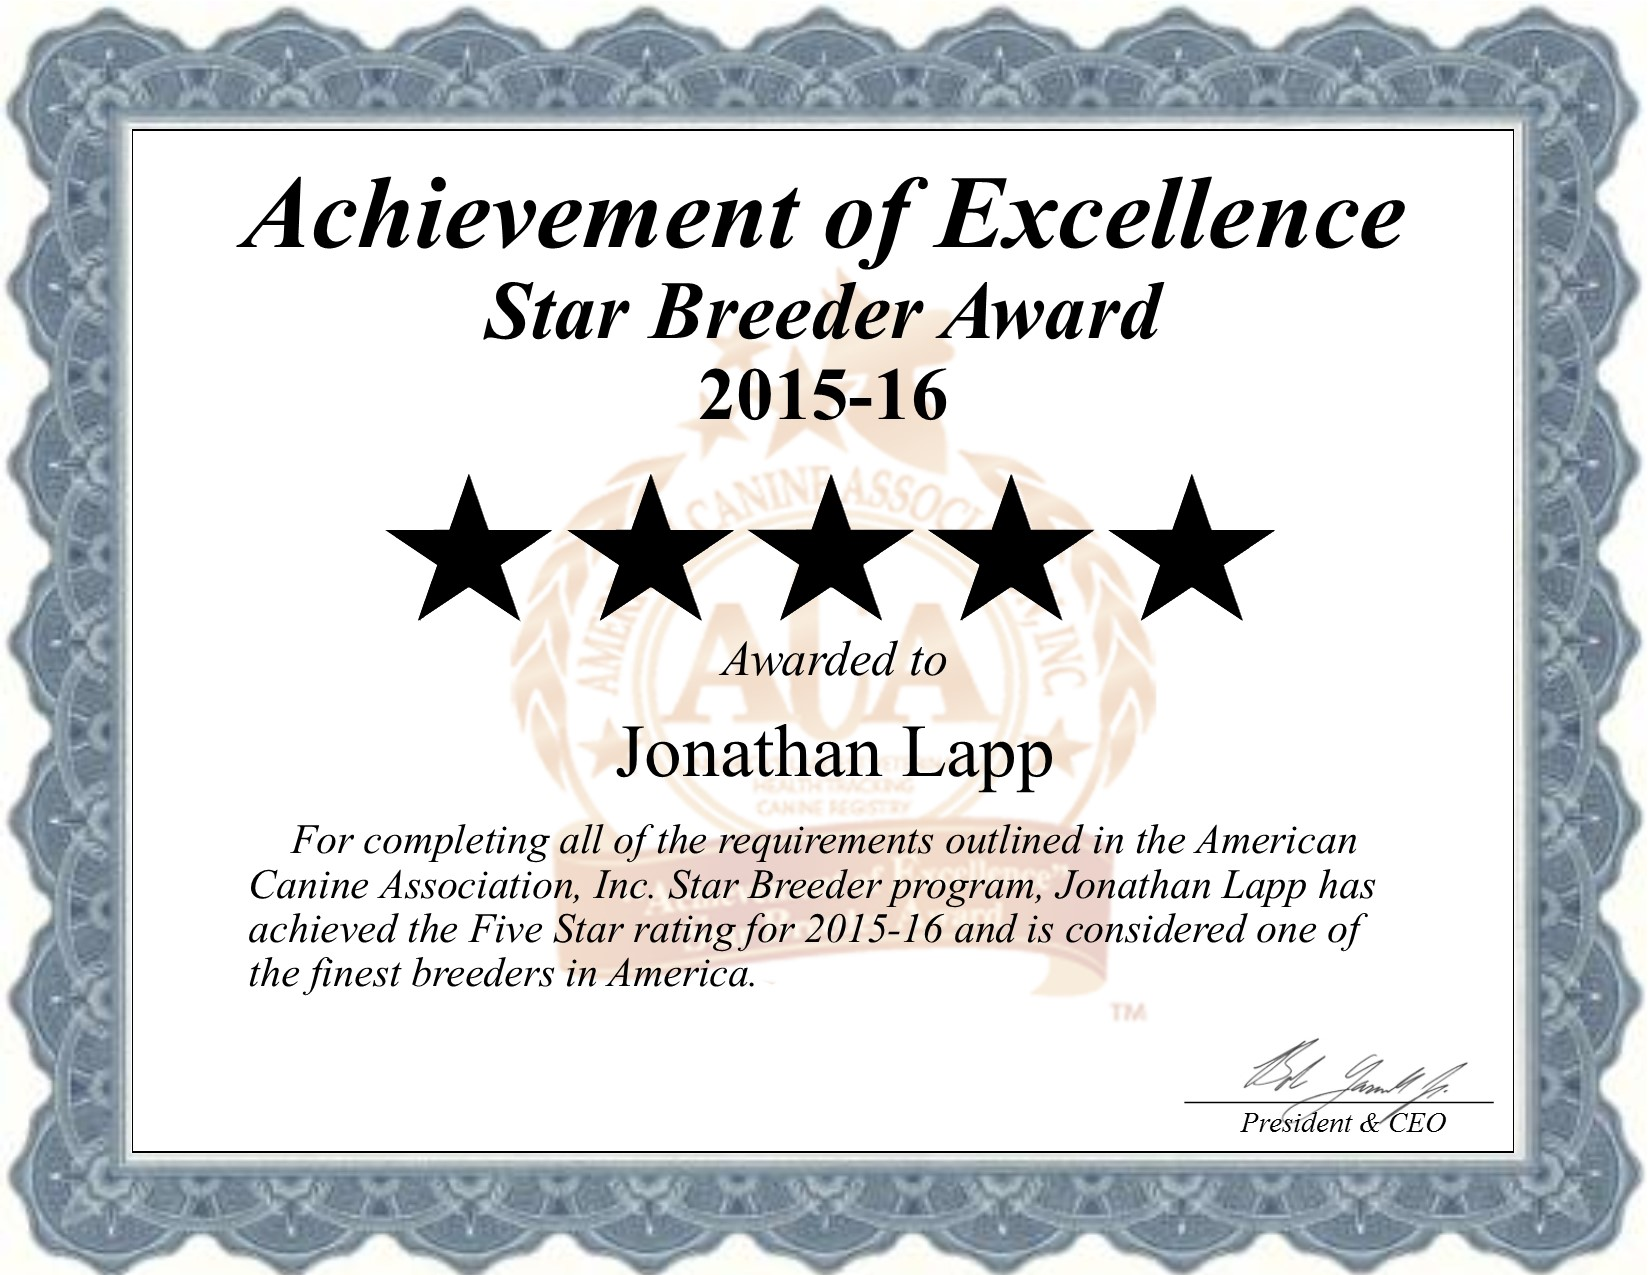 Jonathan, Lapp, dog, breeder, Jonathan-Lapp, dog-breeder, Ephrata, PA, pup, pups, puppies, USDA, Licensed, Inspected, license, number, kennel, puppies, litter, agriculture, department, dept, dogs, star, breeder, breeders, USA, loving, American, Canine, Association, Program, Dog, ACA, breeding, litter, health, shows, education, puppymill, breeder, mill, 5